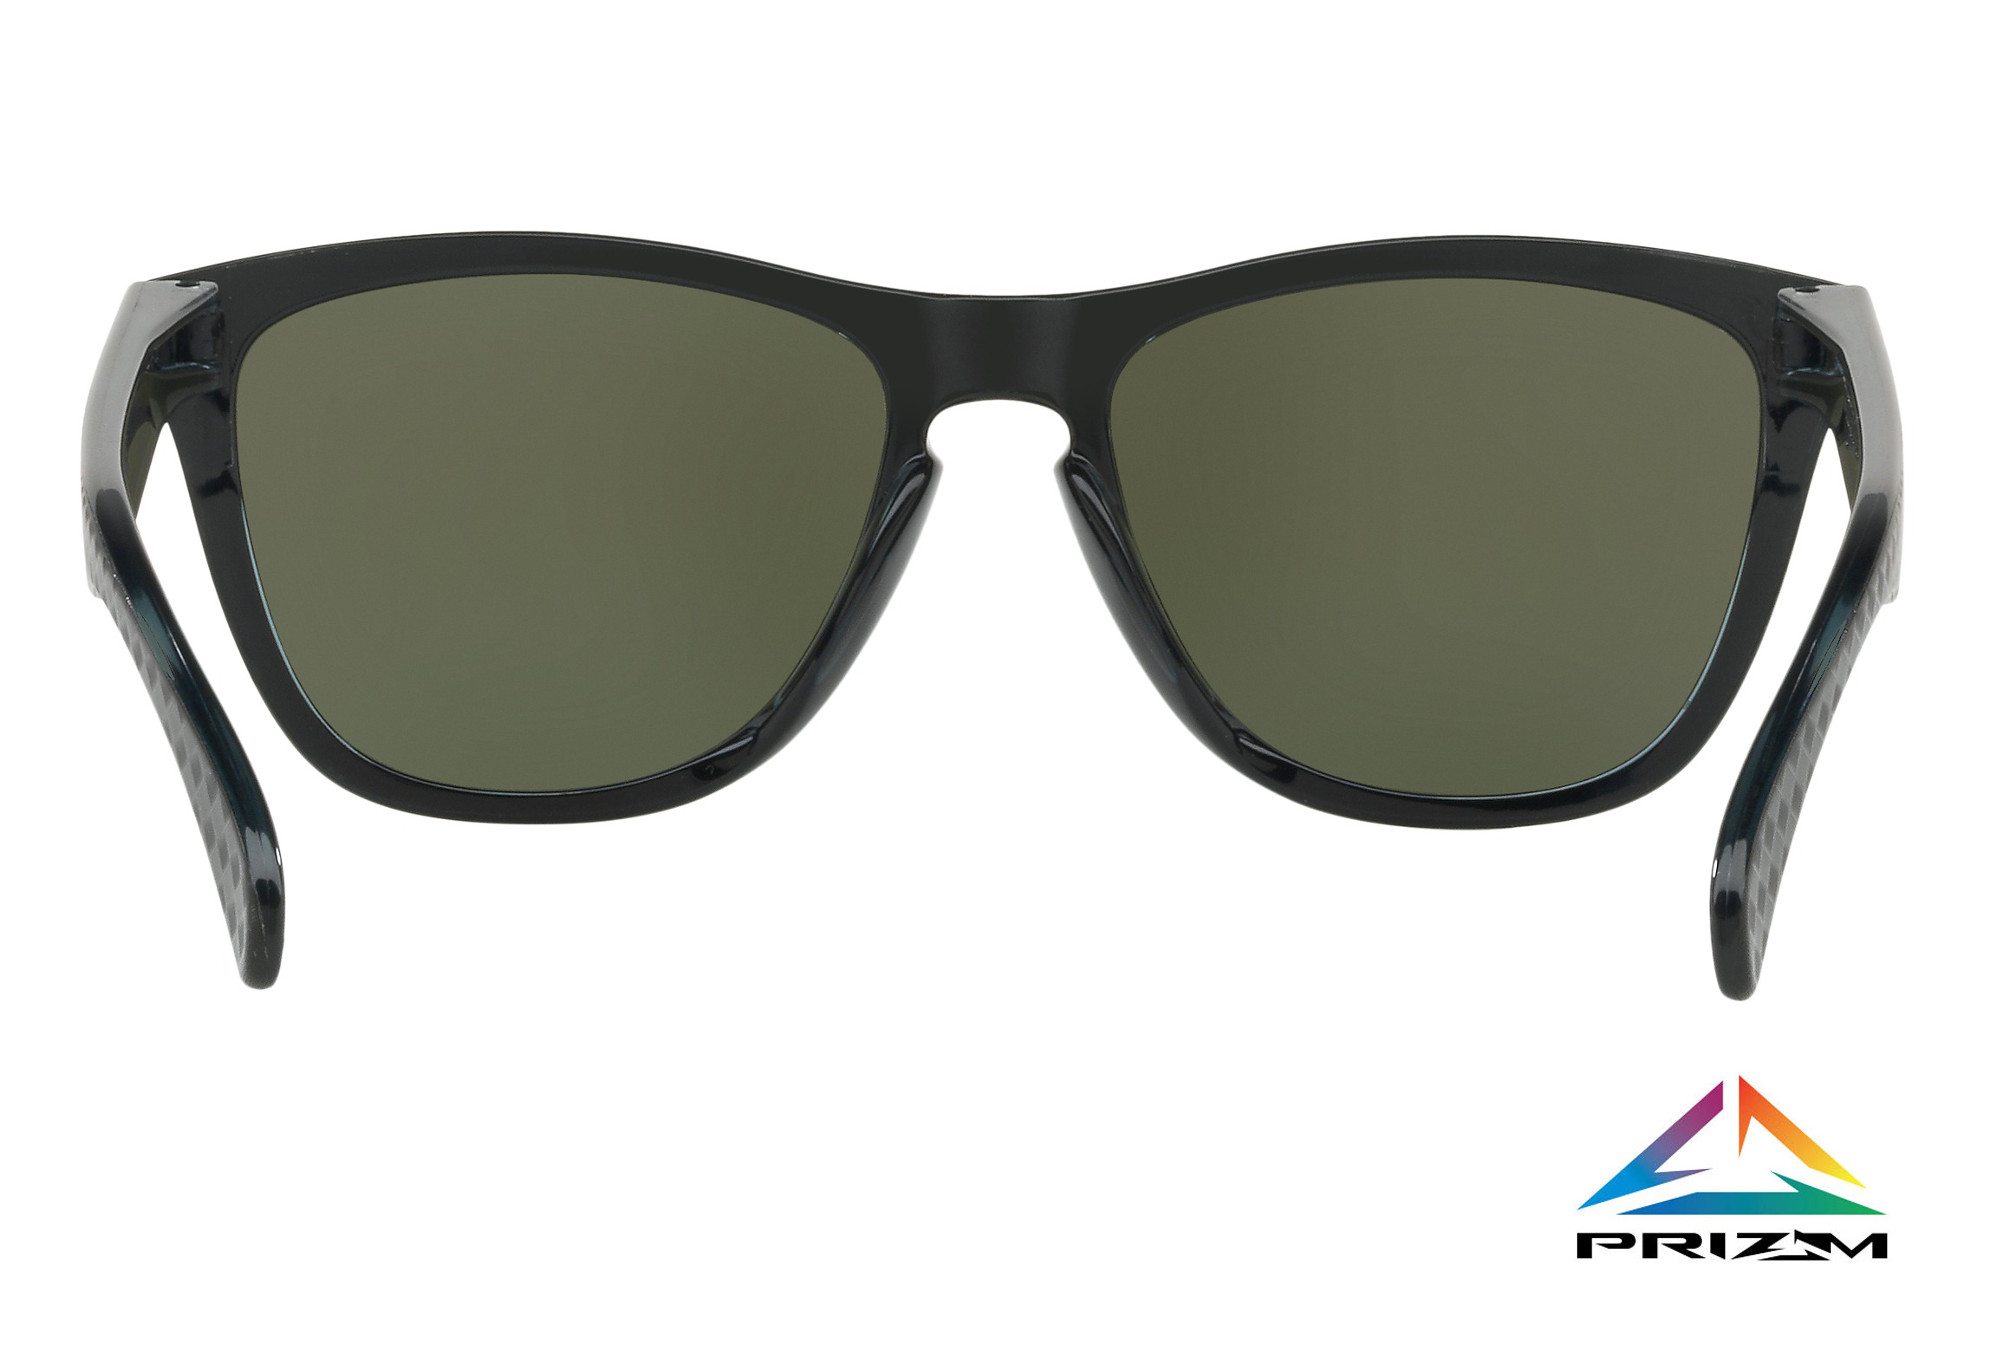 New oakley frogskins limited edition | premier boutique.